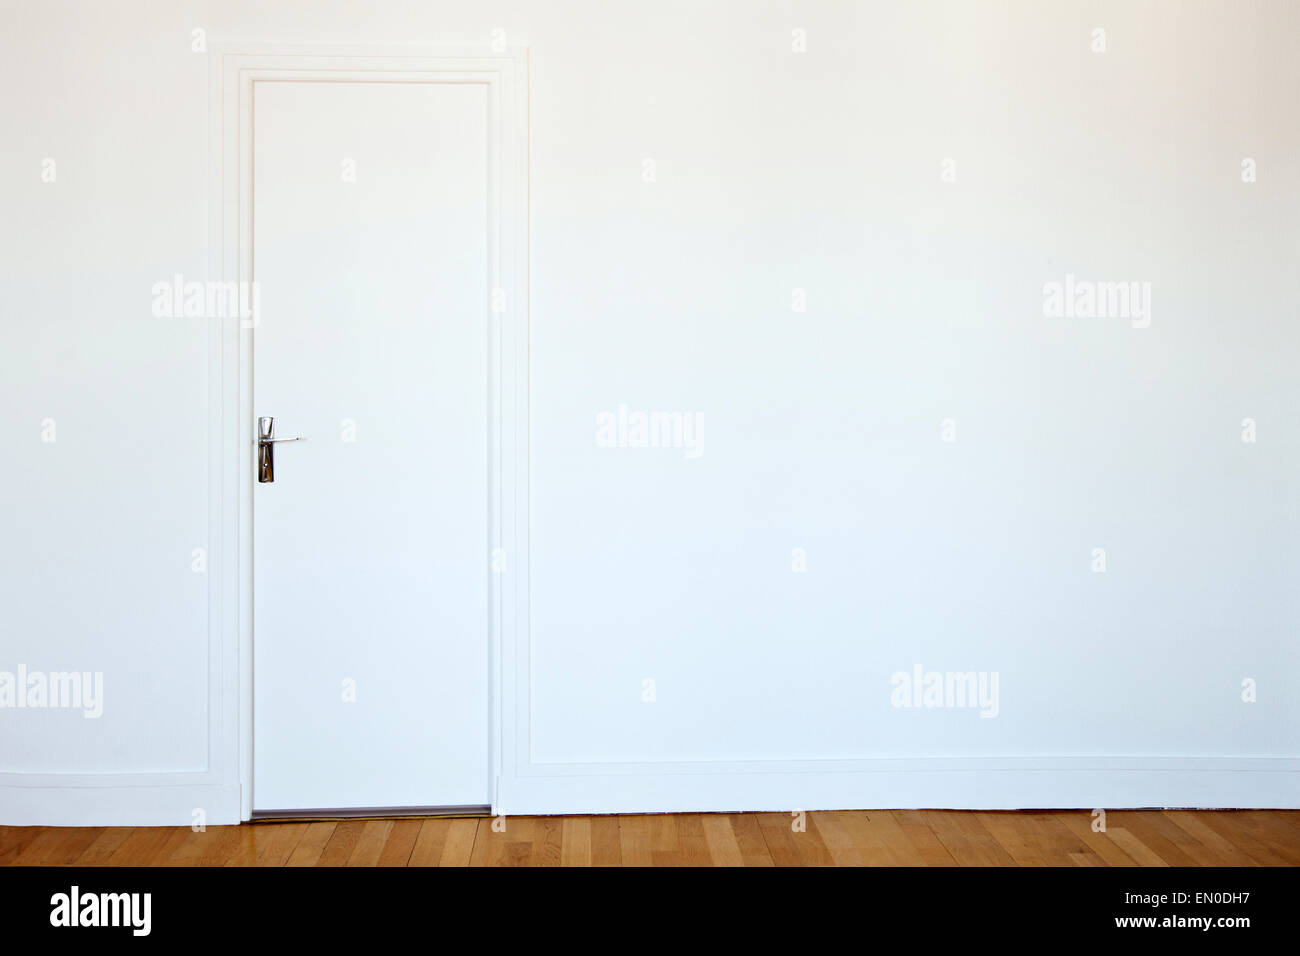 white door on white wall, real estate background - Stock Image